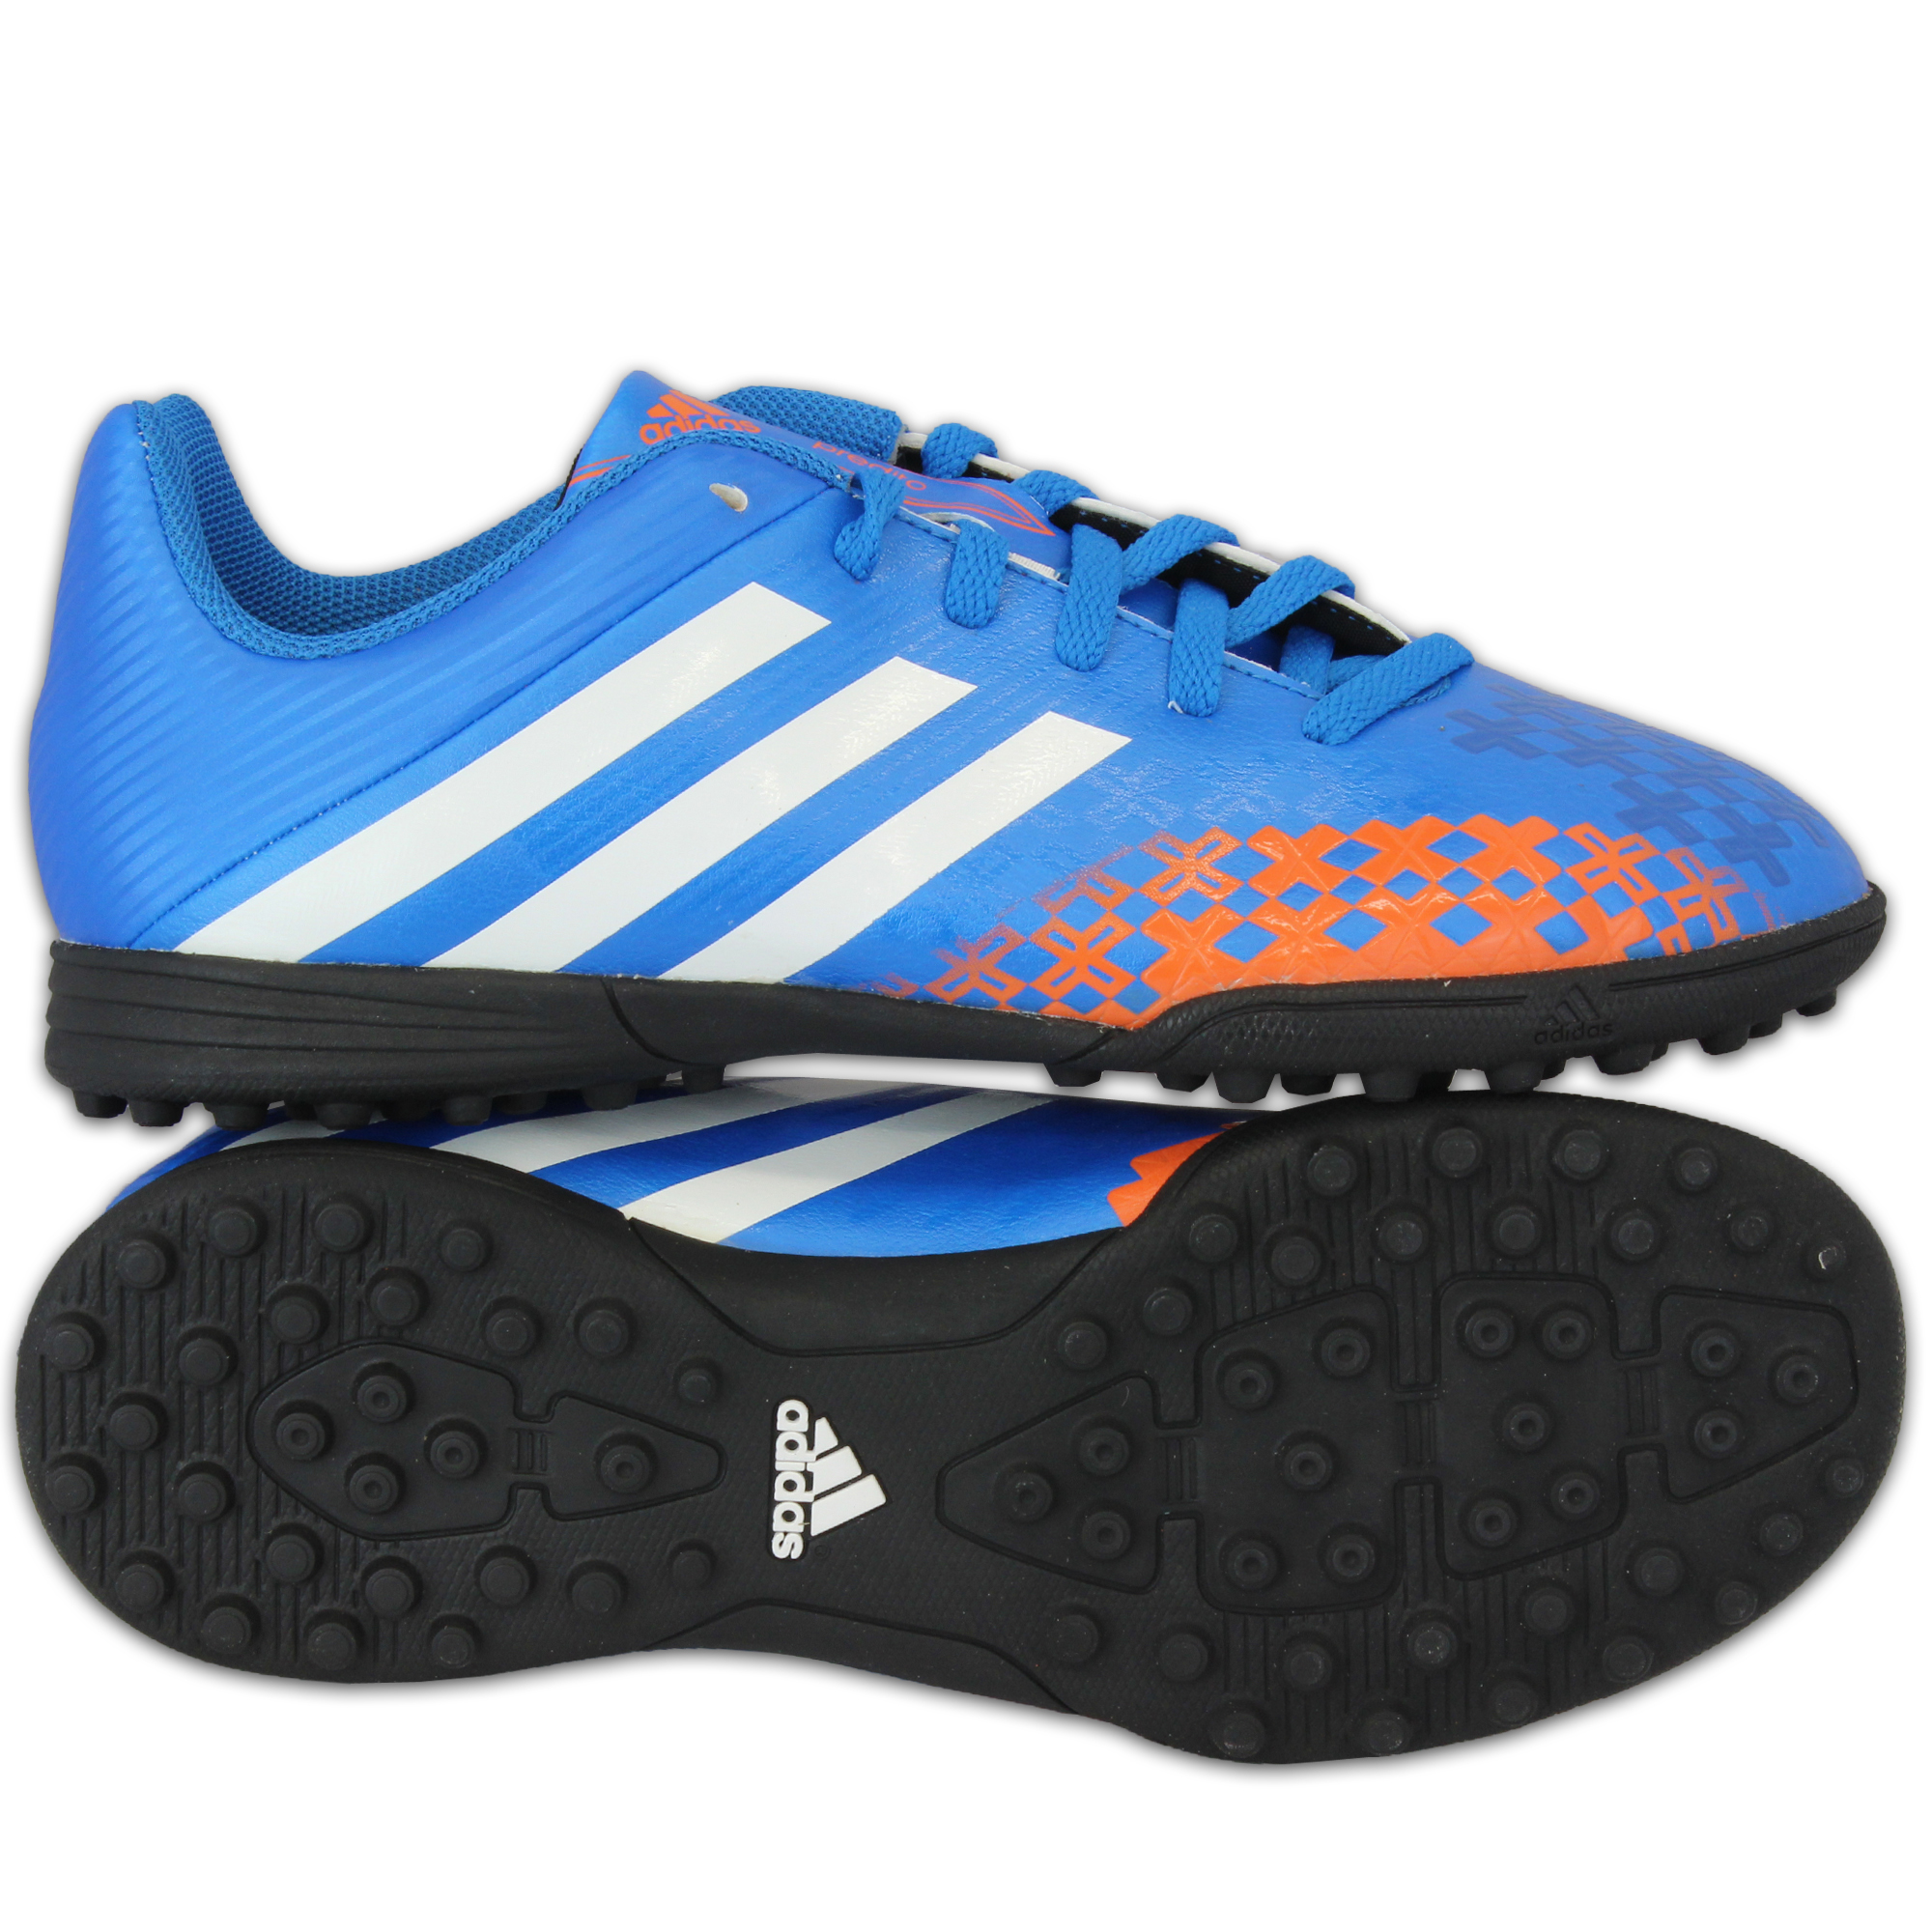 Boys-ADIDAS-Trainers-Kids-Football-Soccer-Astro-Turf-